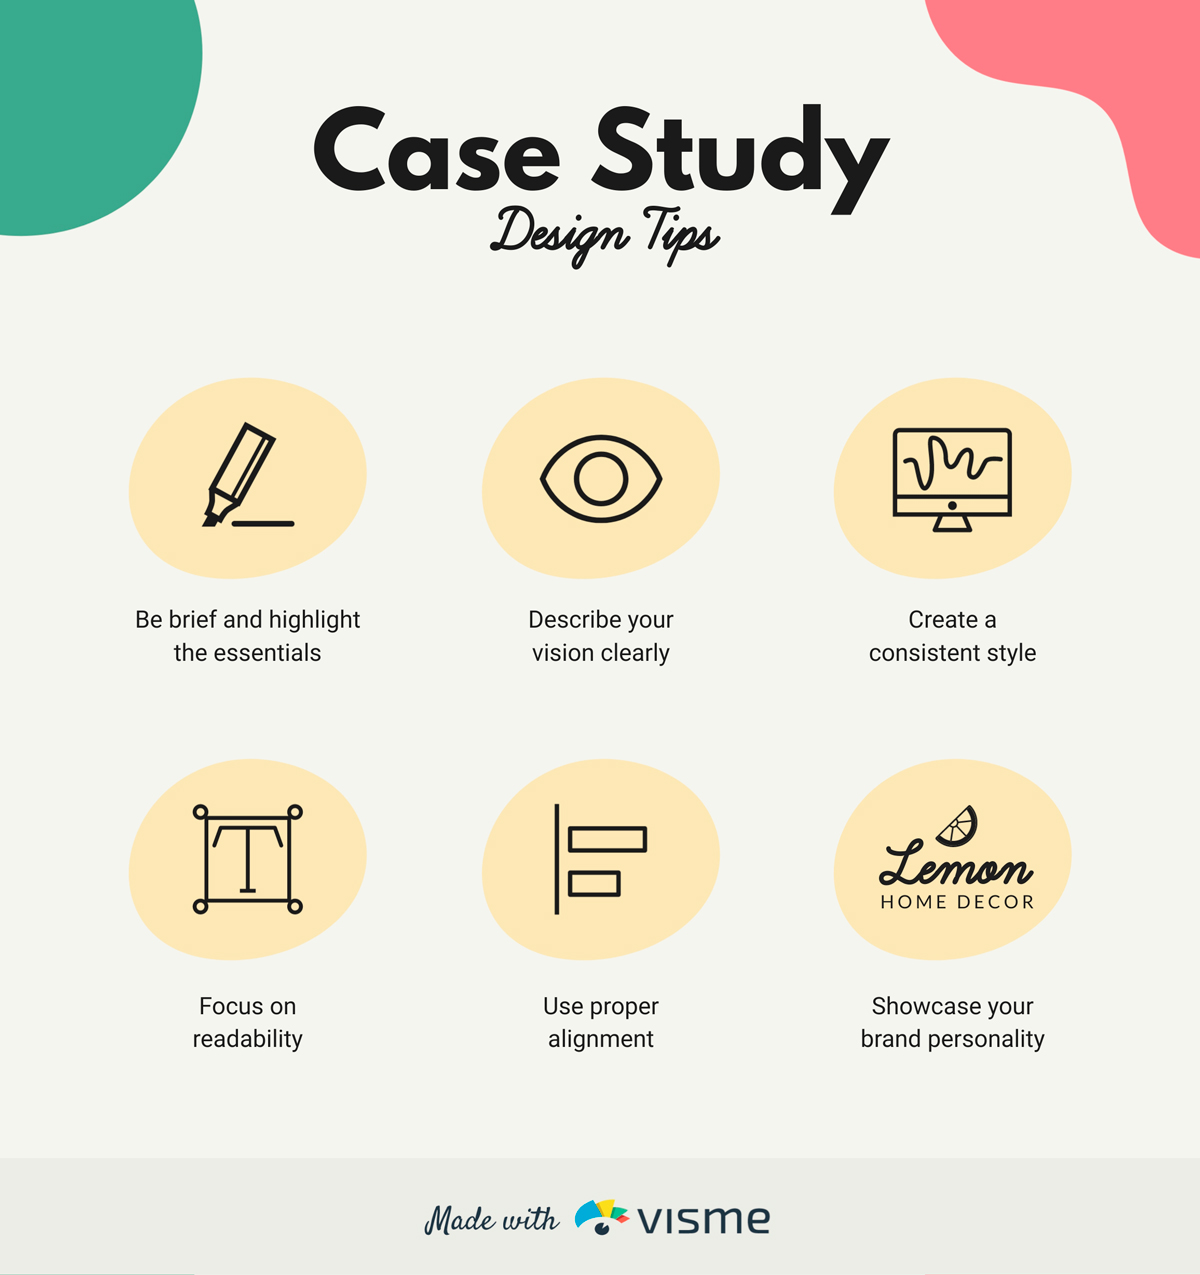 Infographic sharing six case study design tips.